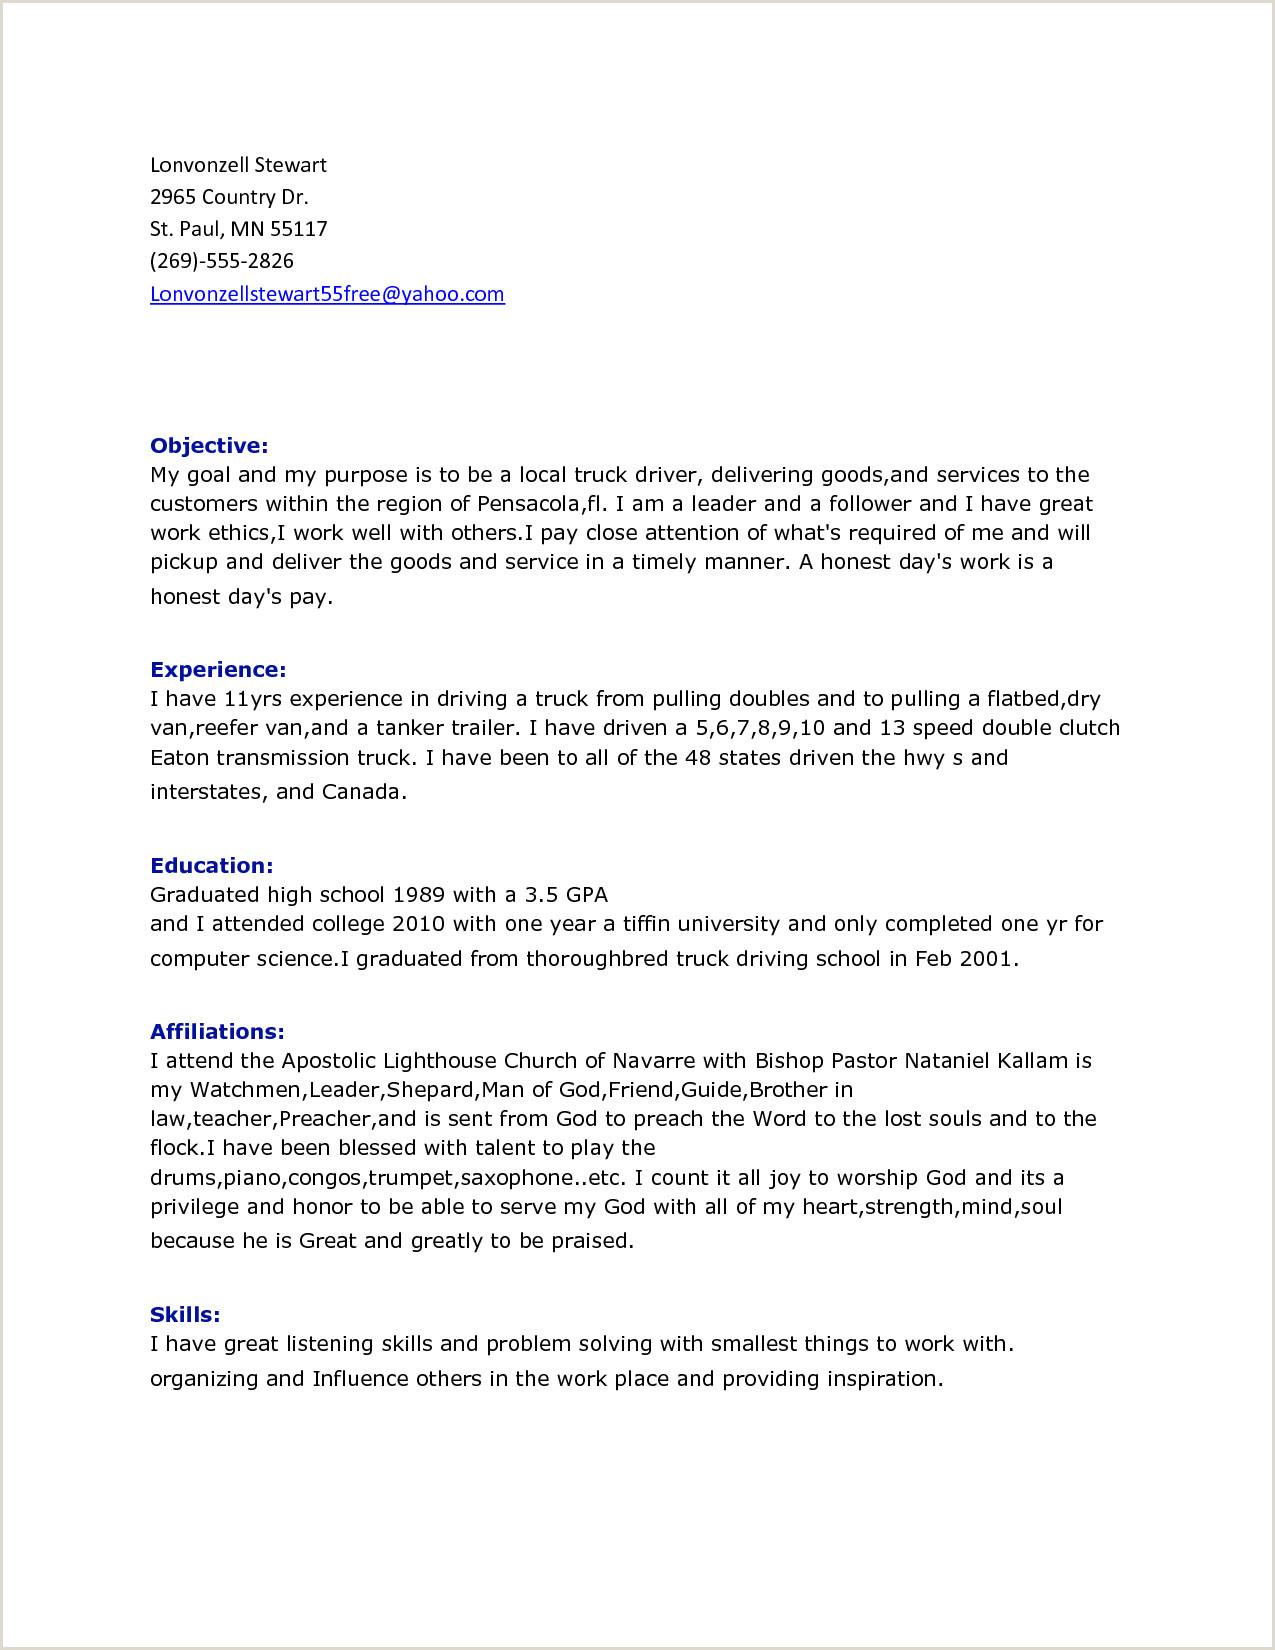 Cv format for Driver Job School Bus Driver Job Description for Resume Professional